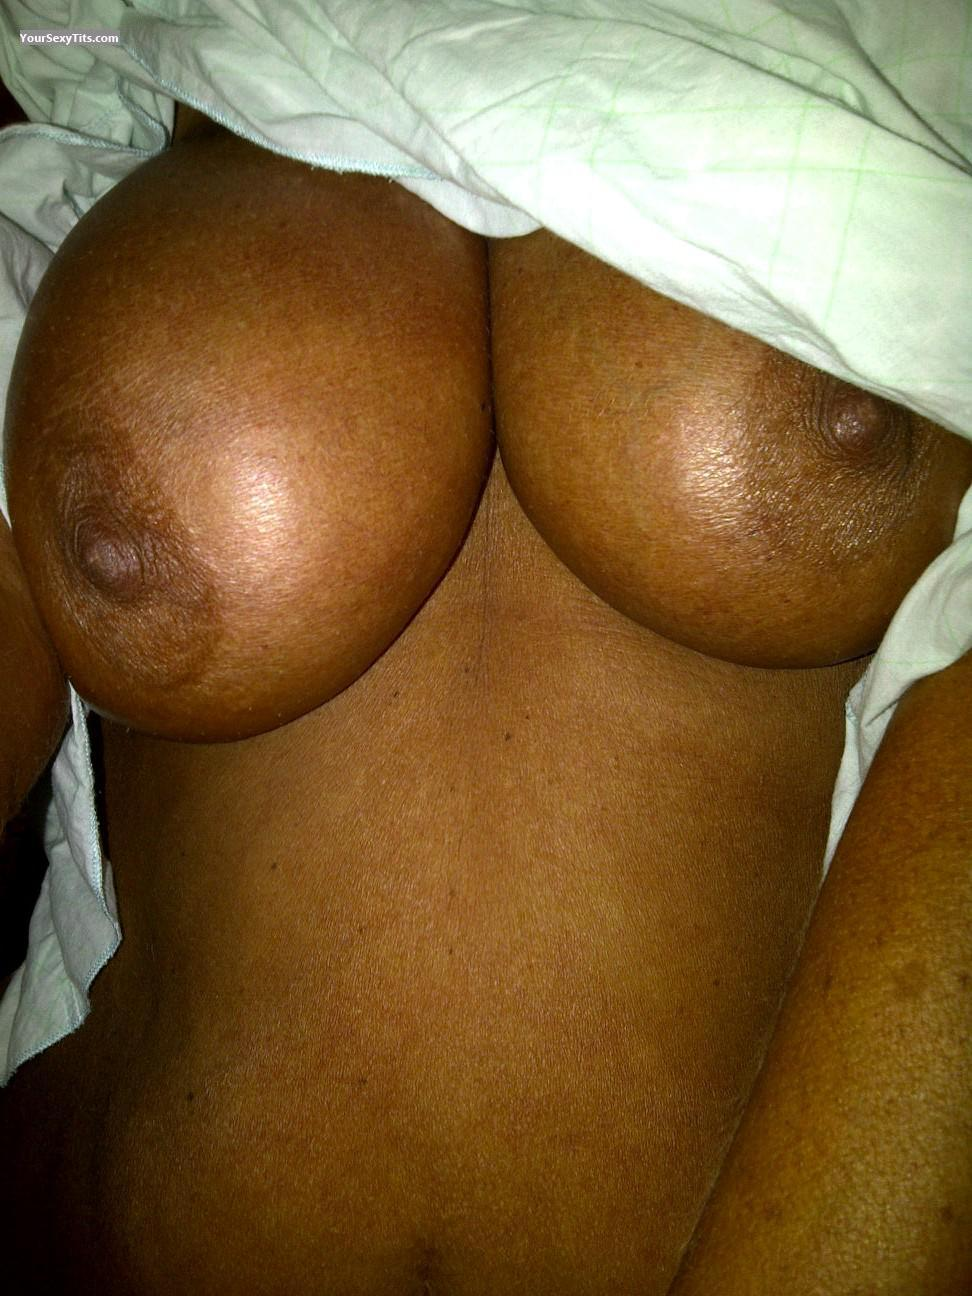 My Very big Tits Selfie by Mississippi Girl